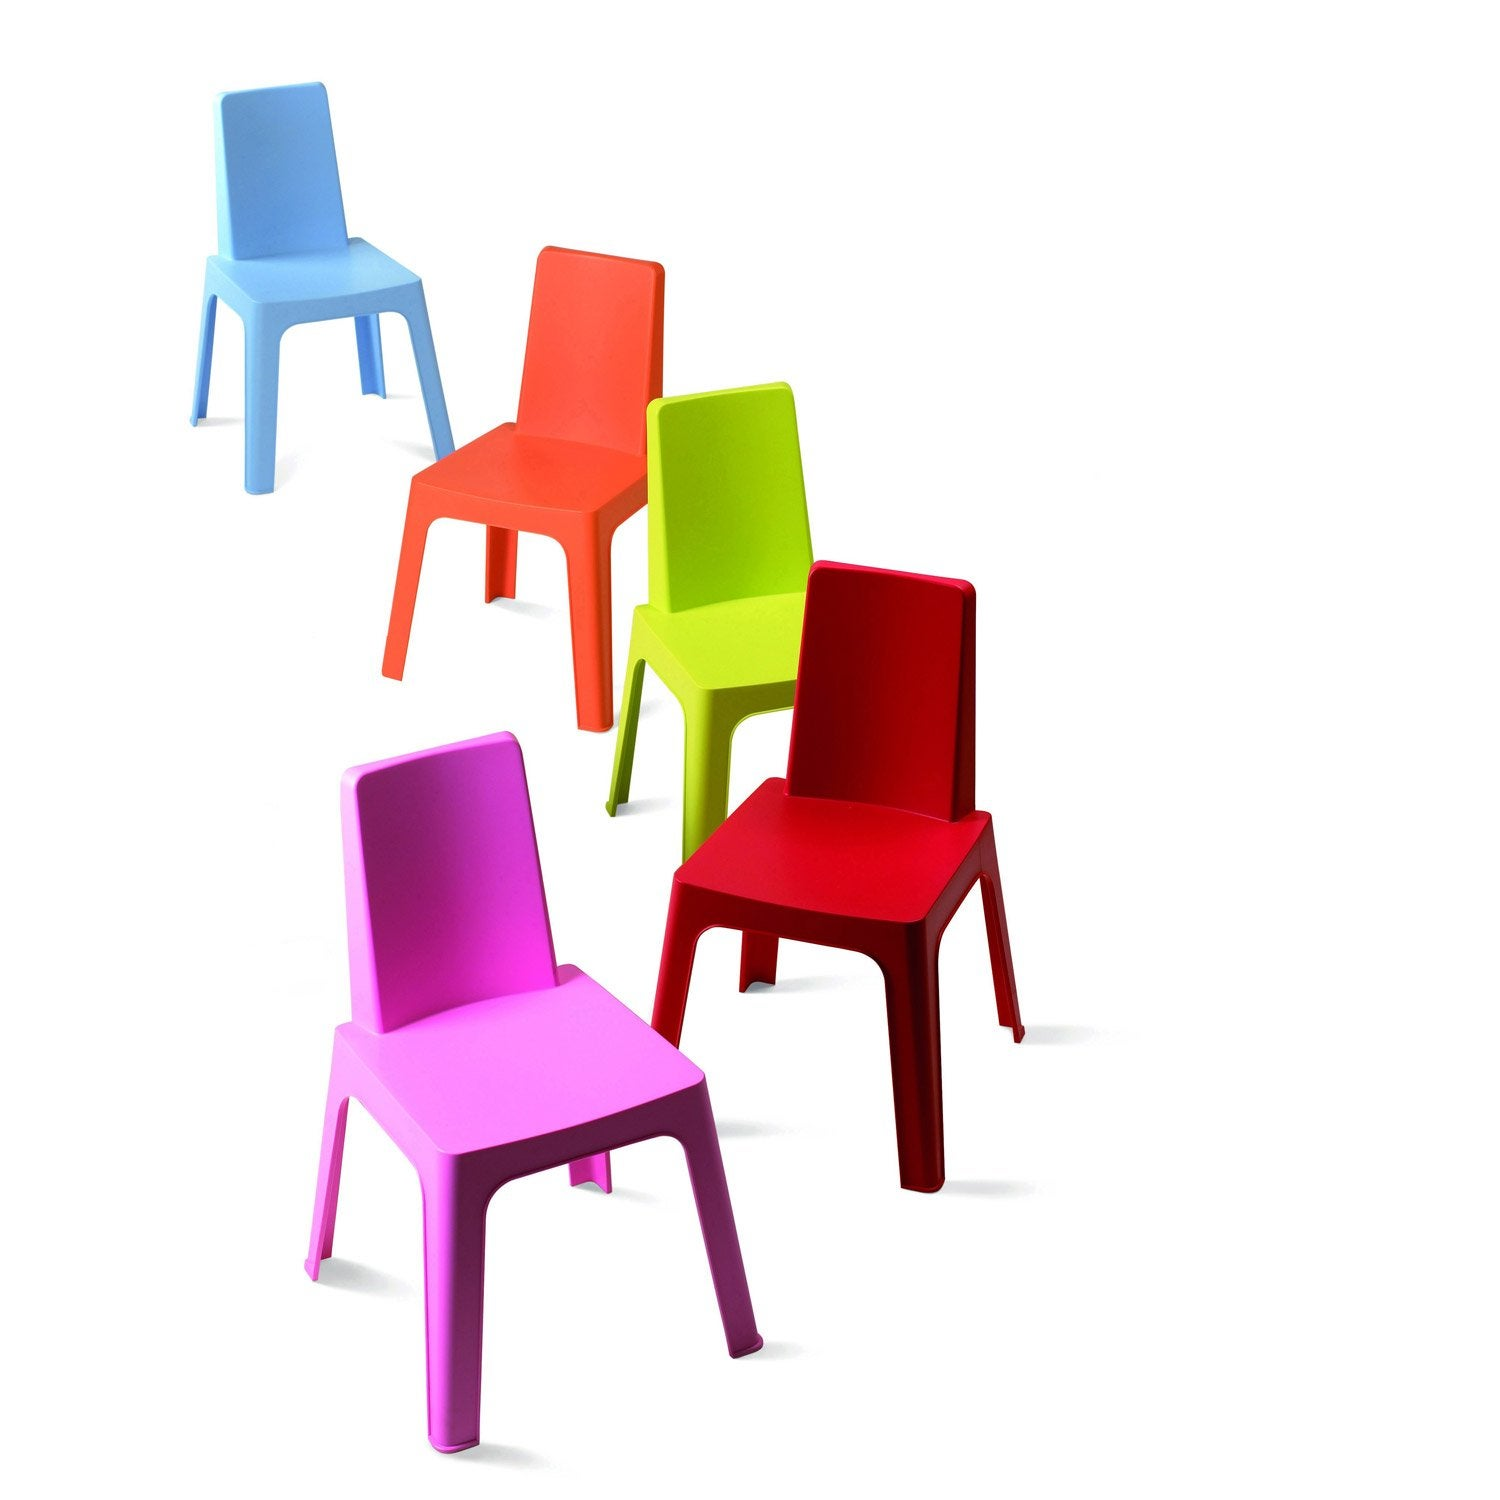 Chaise pour enfants en r sine inject e julieta panach for Salon de jardin de couleur